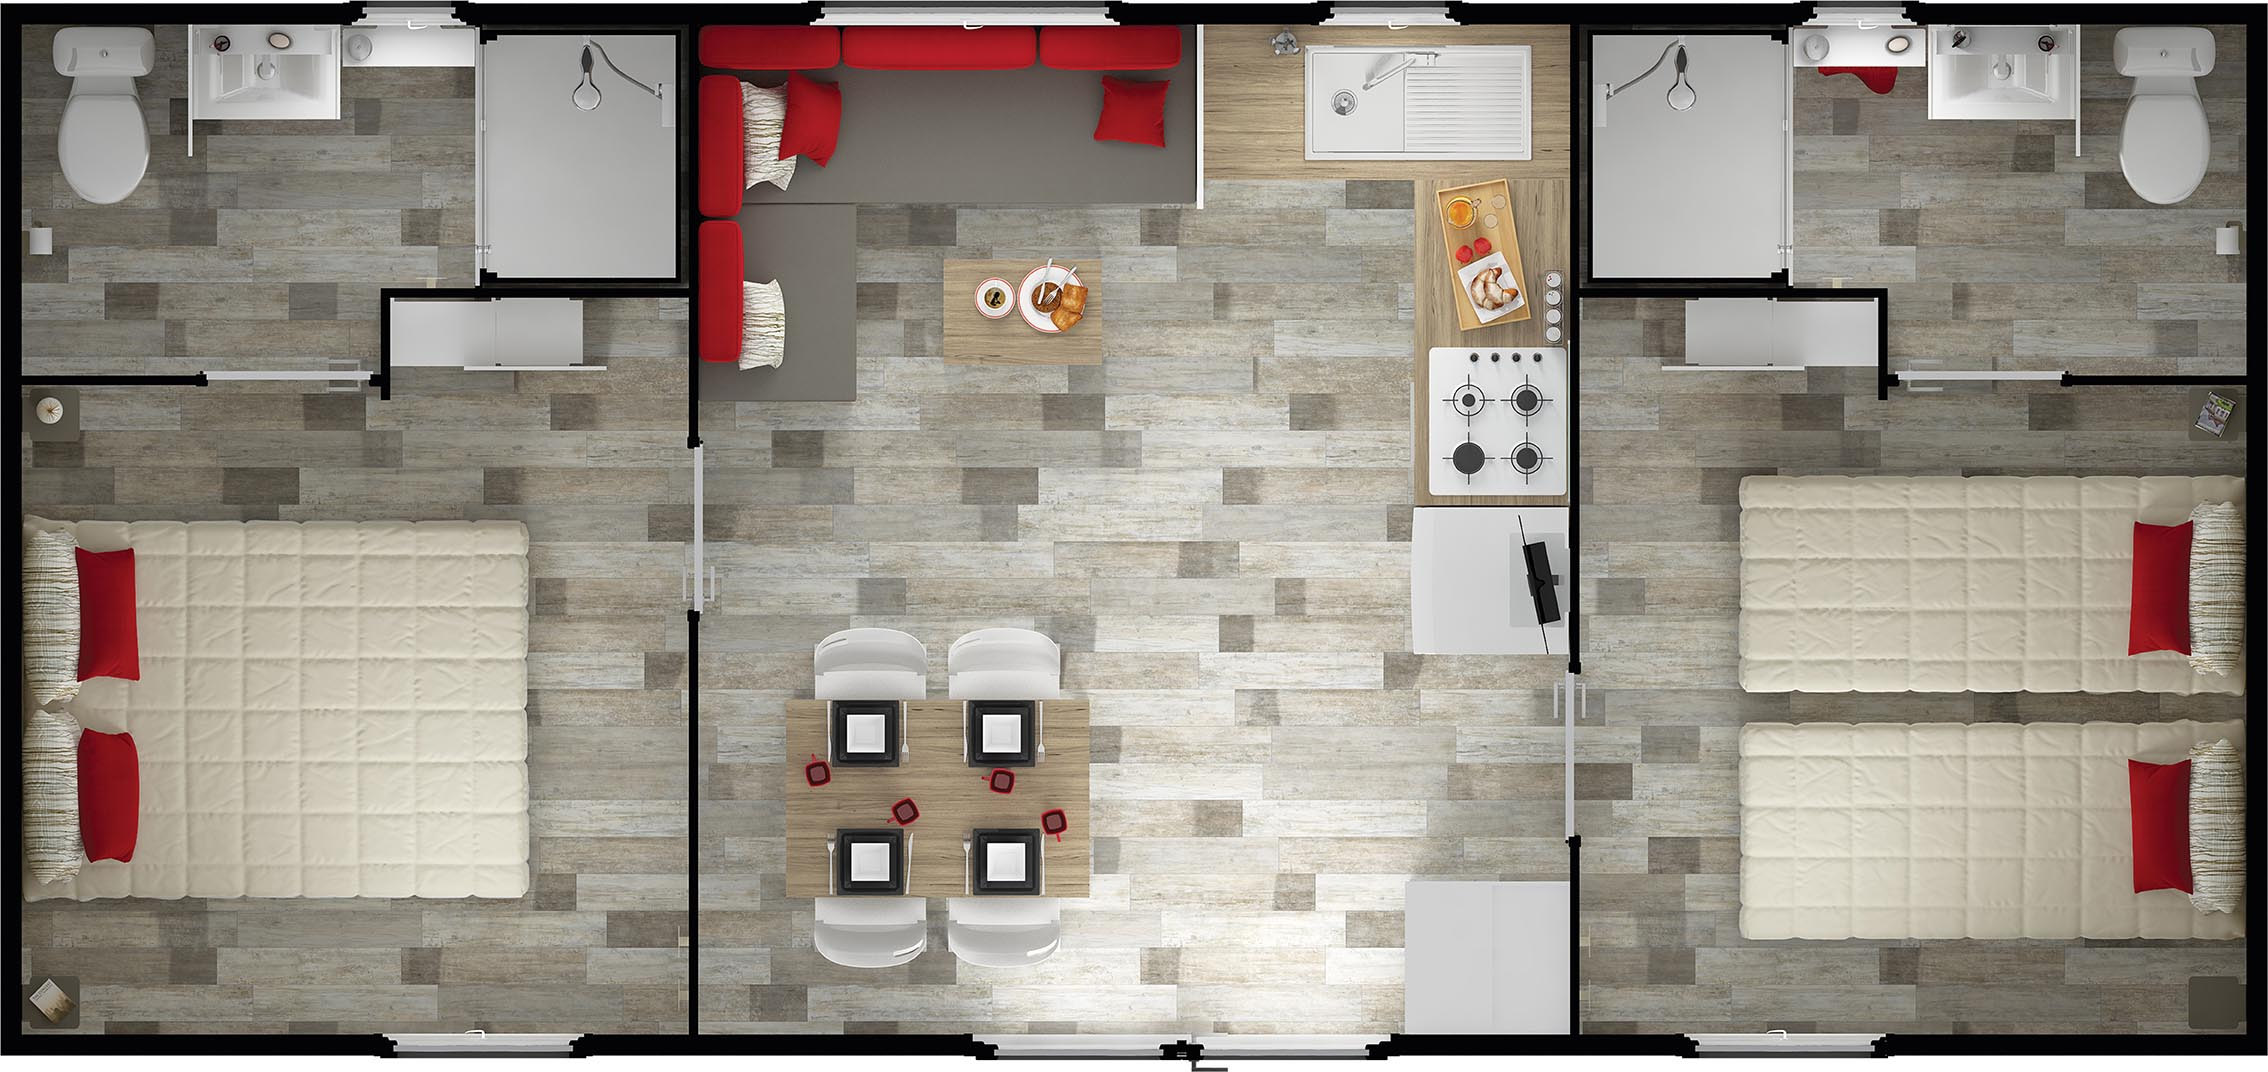 IMAGES CREATIONS - Rideau Mobil Home - Nirvana duo espace plan copie